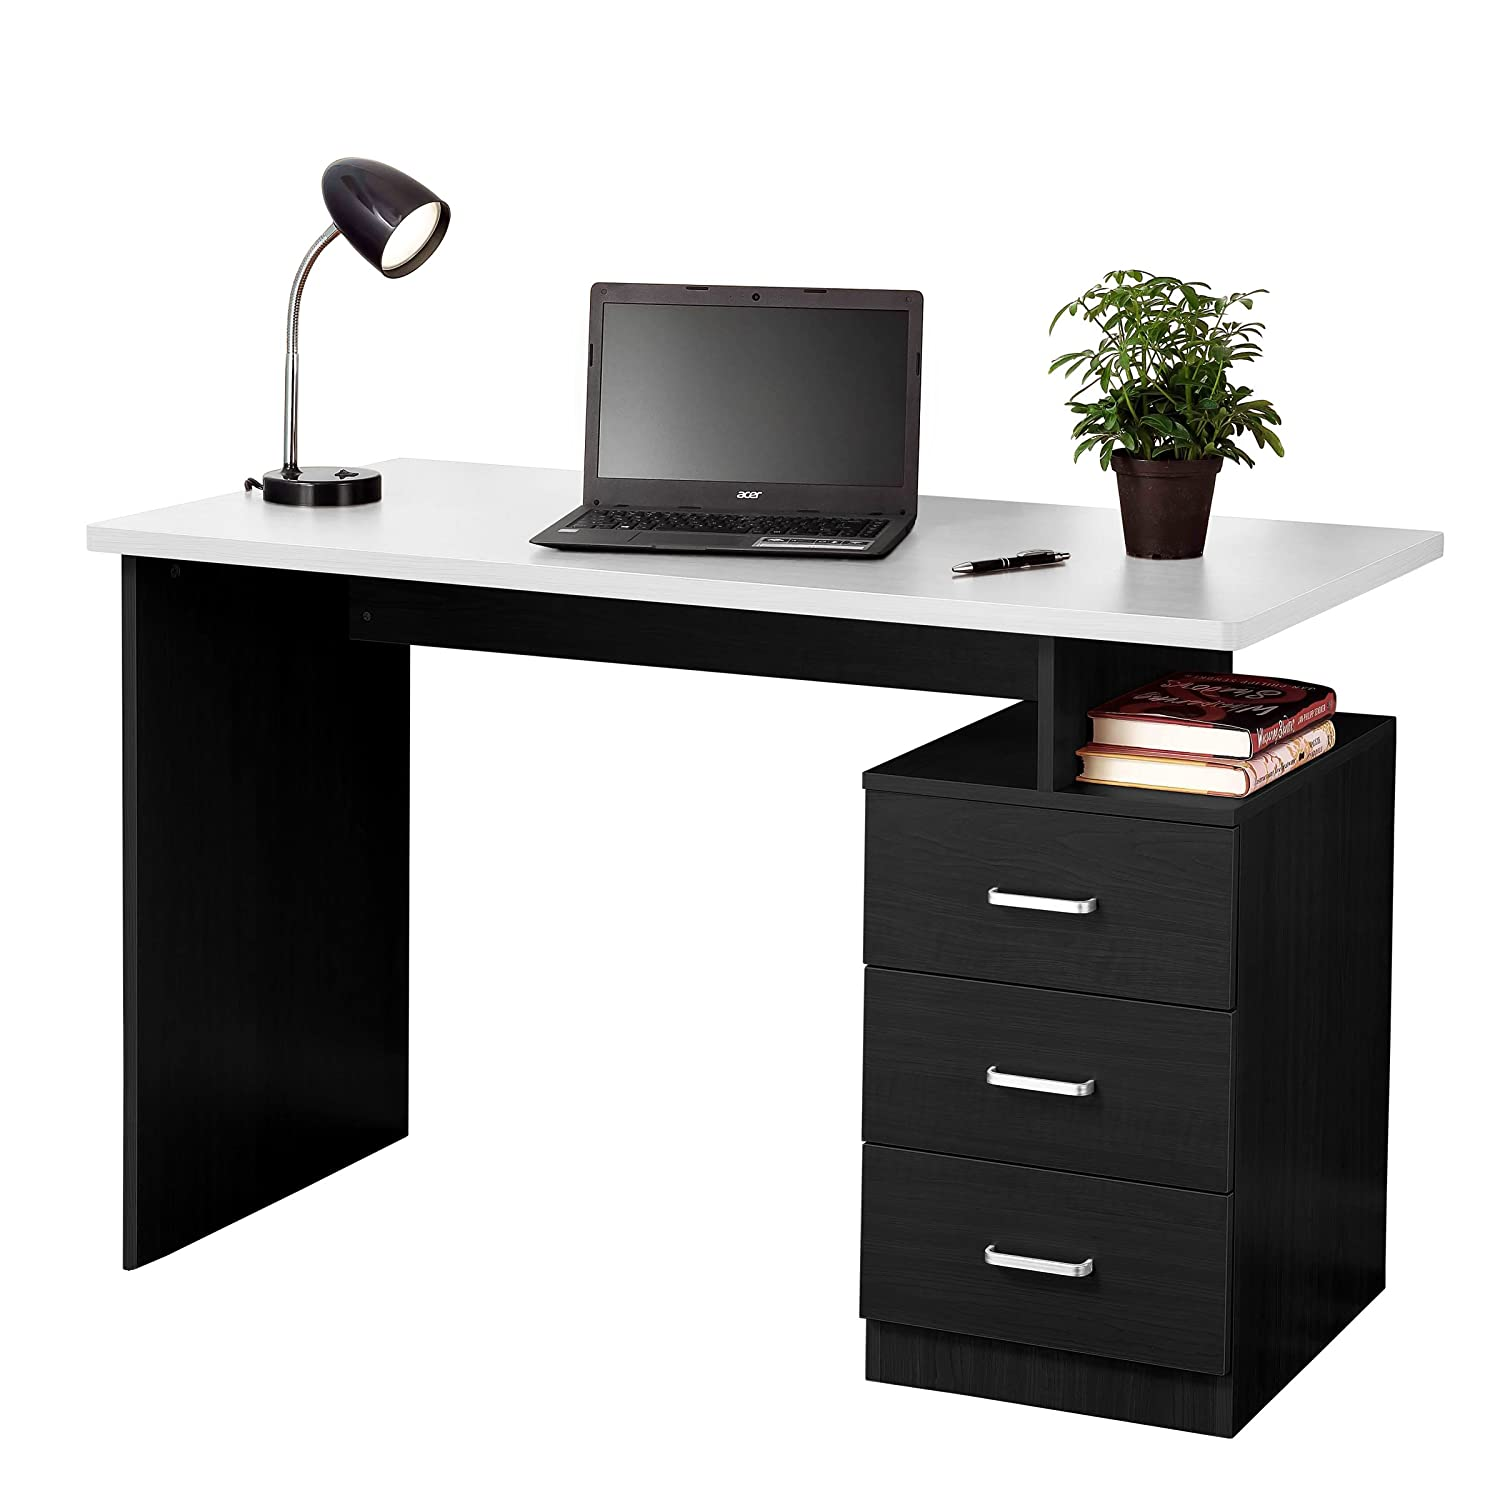 office buying storage system credenzas drawers shelves and desk chair small with steel file credenza over white desks